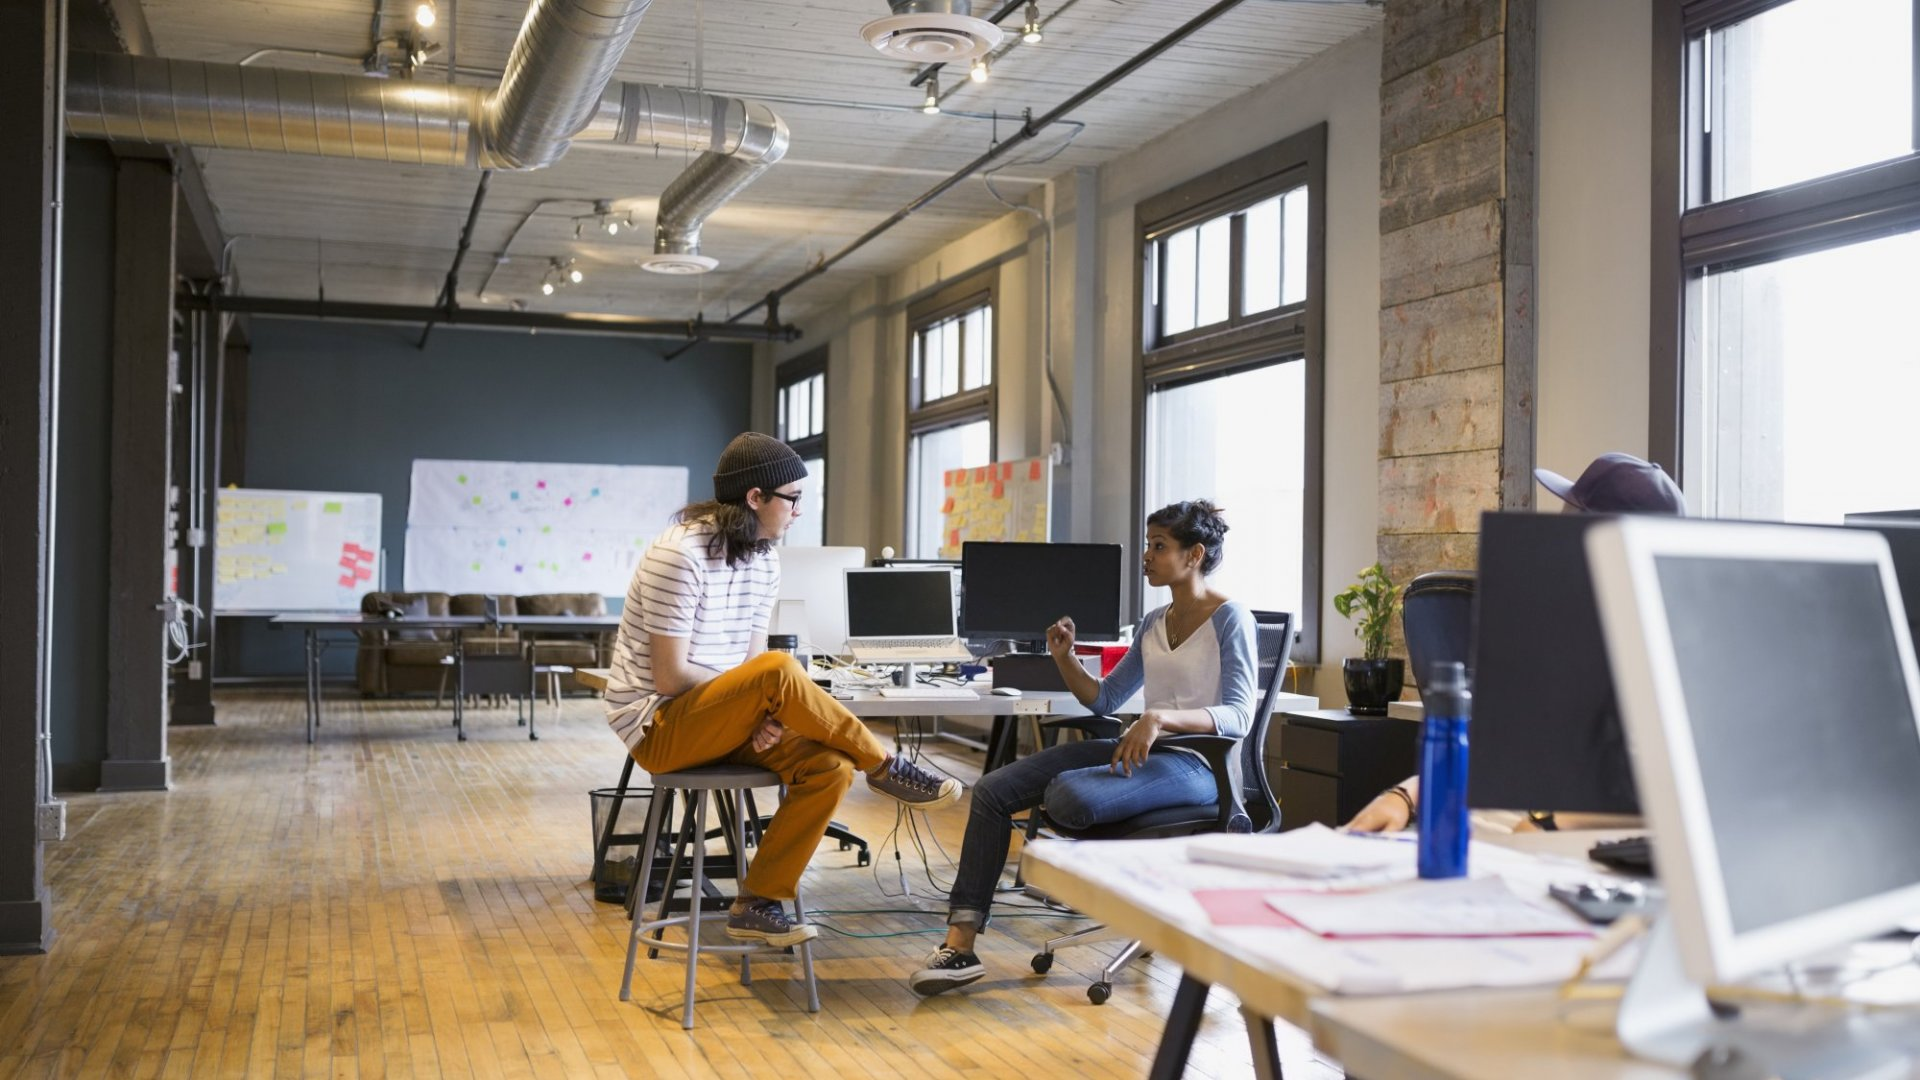 3 Traits Your Business Must Have in Order to Build a Sustainable Culture